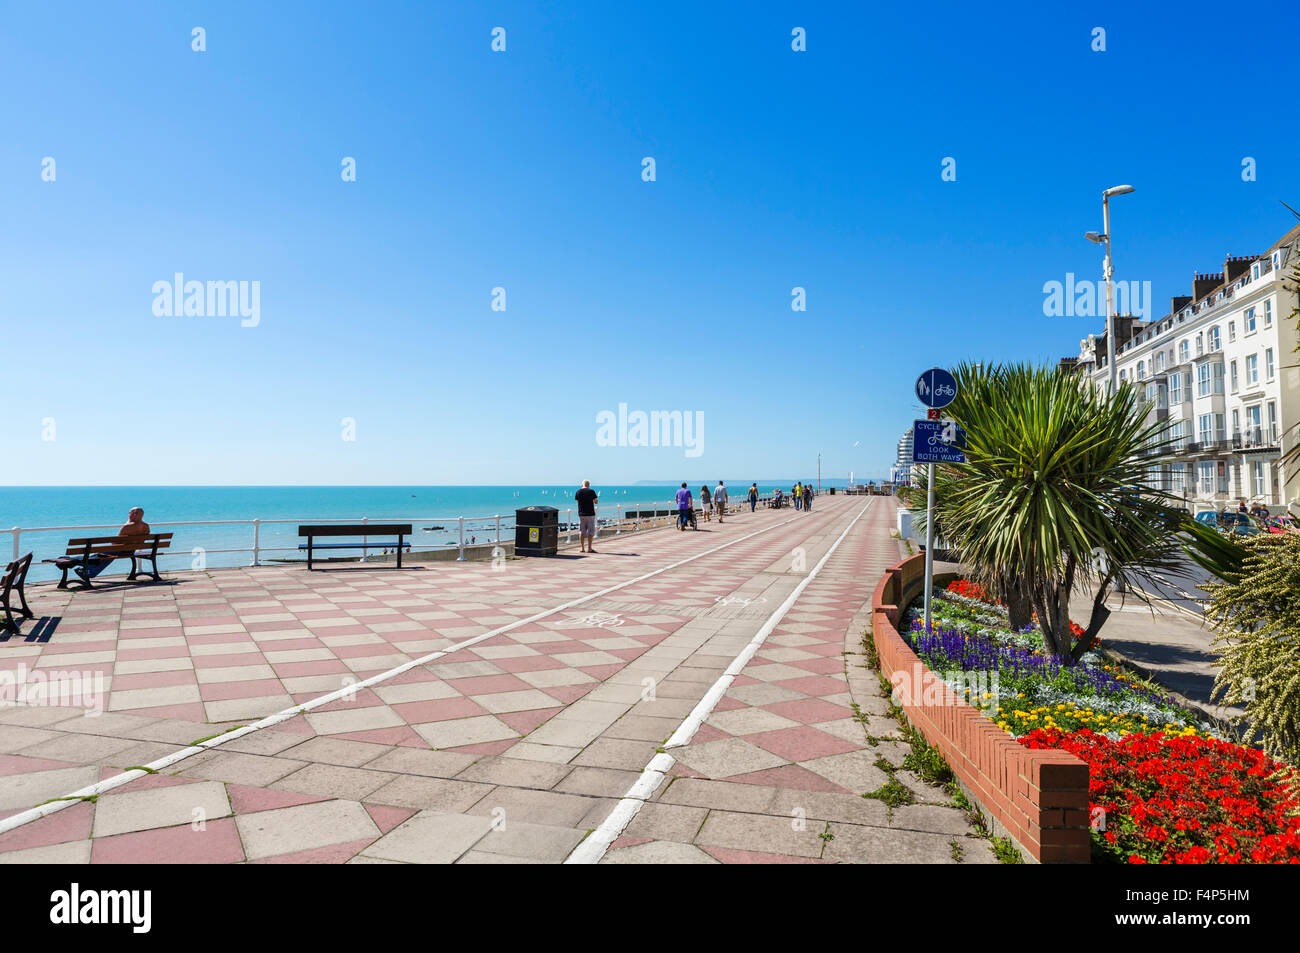 The seafront promenade, Hastings, East Sussex, England, UK - Stock Image